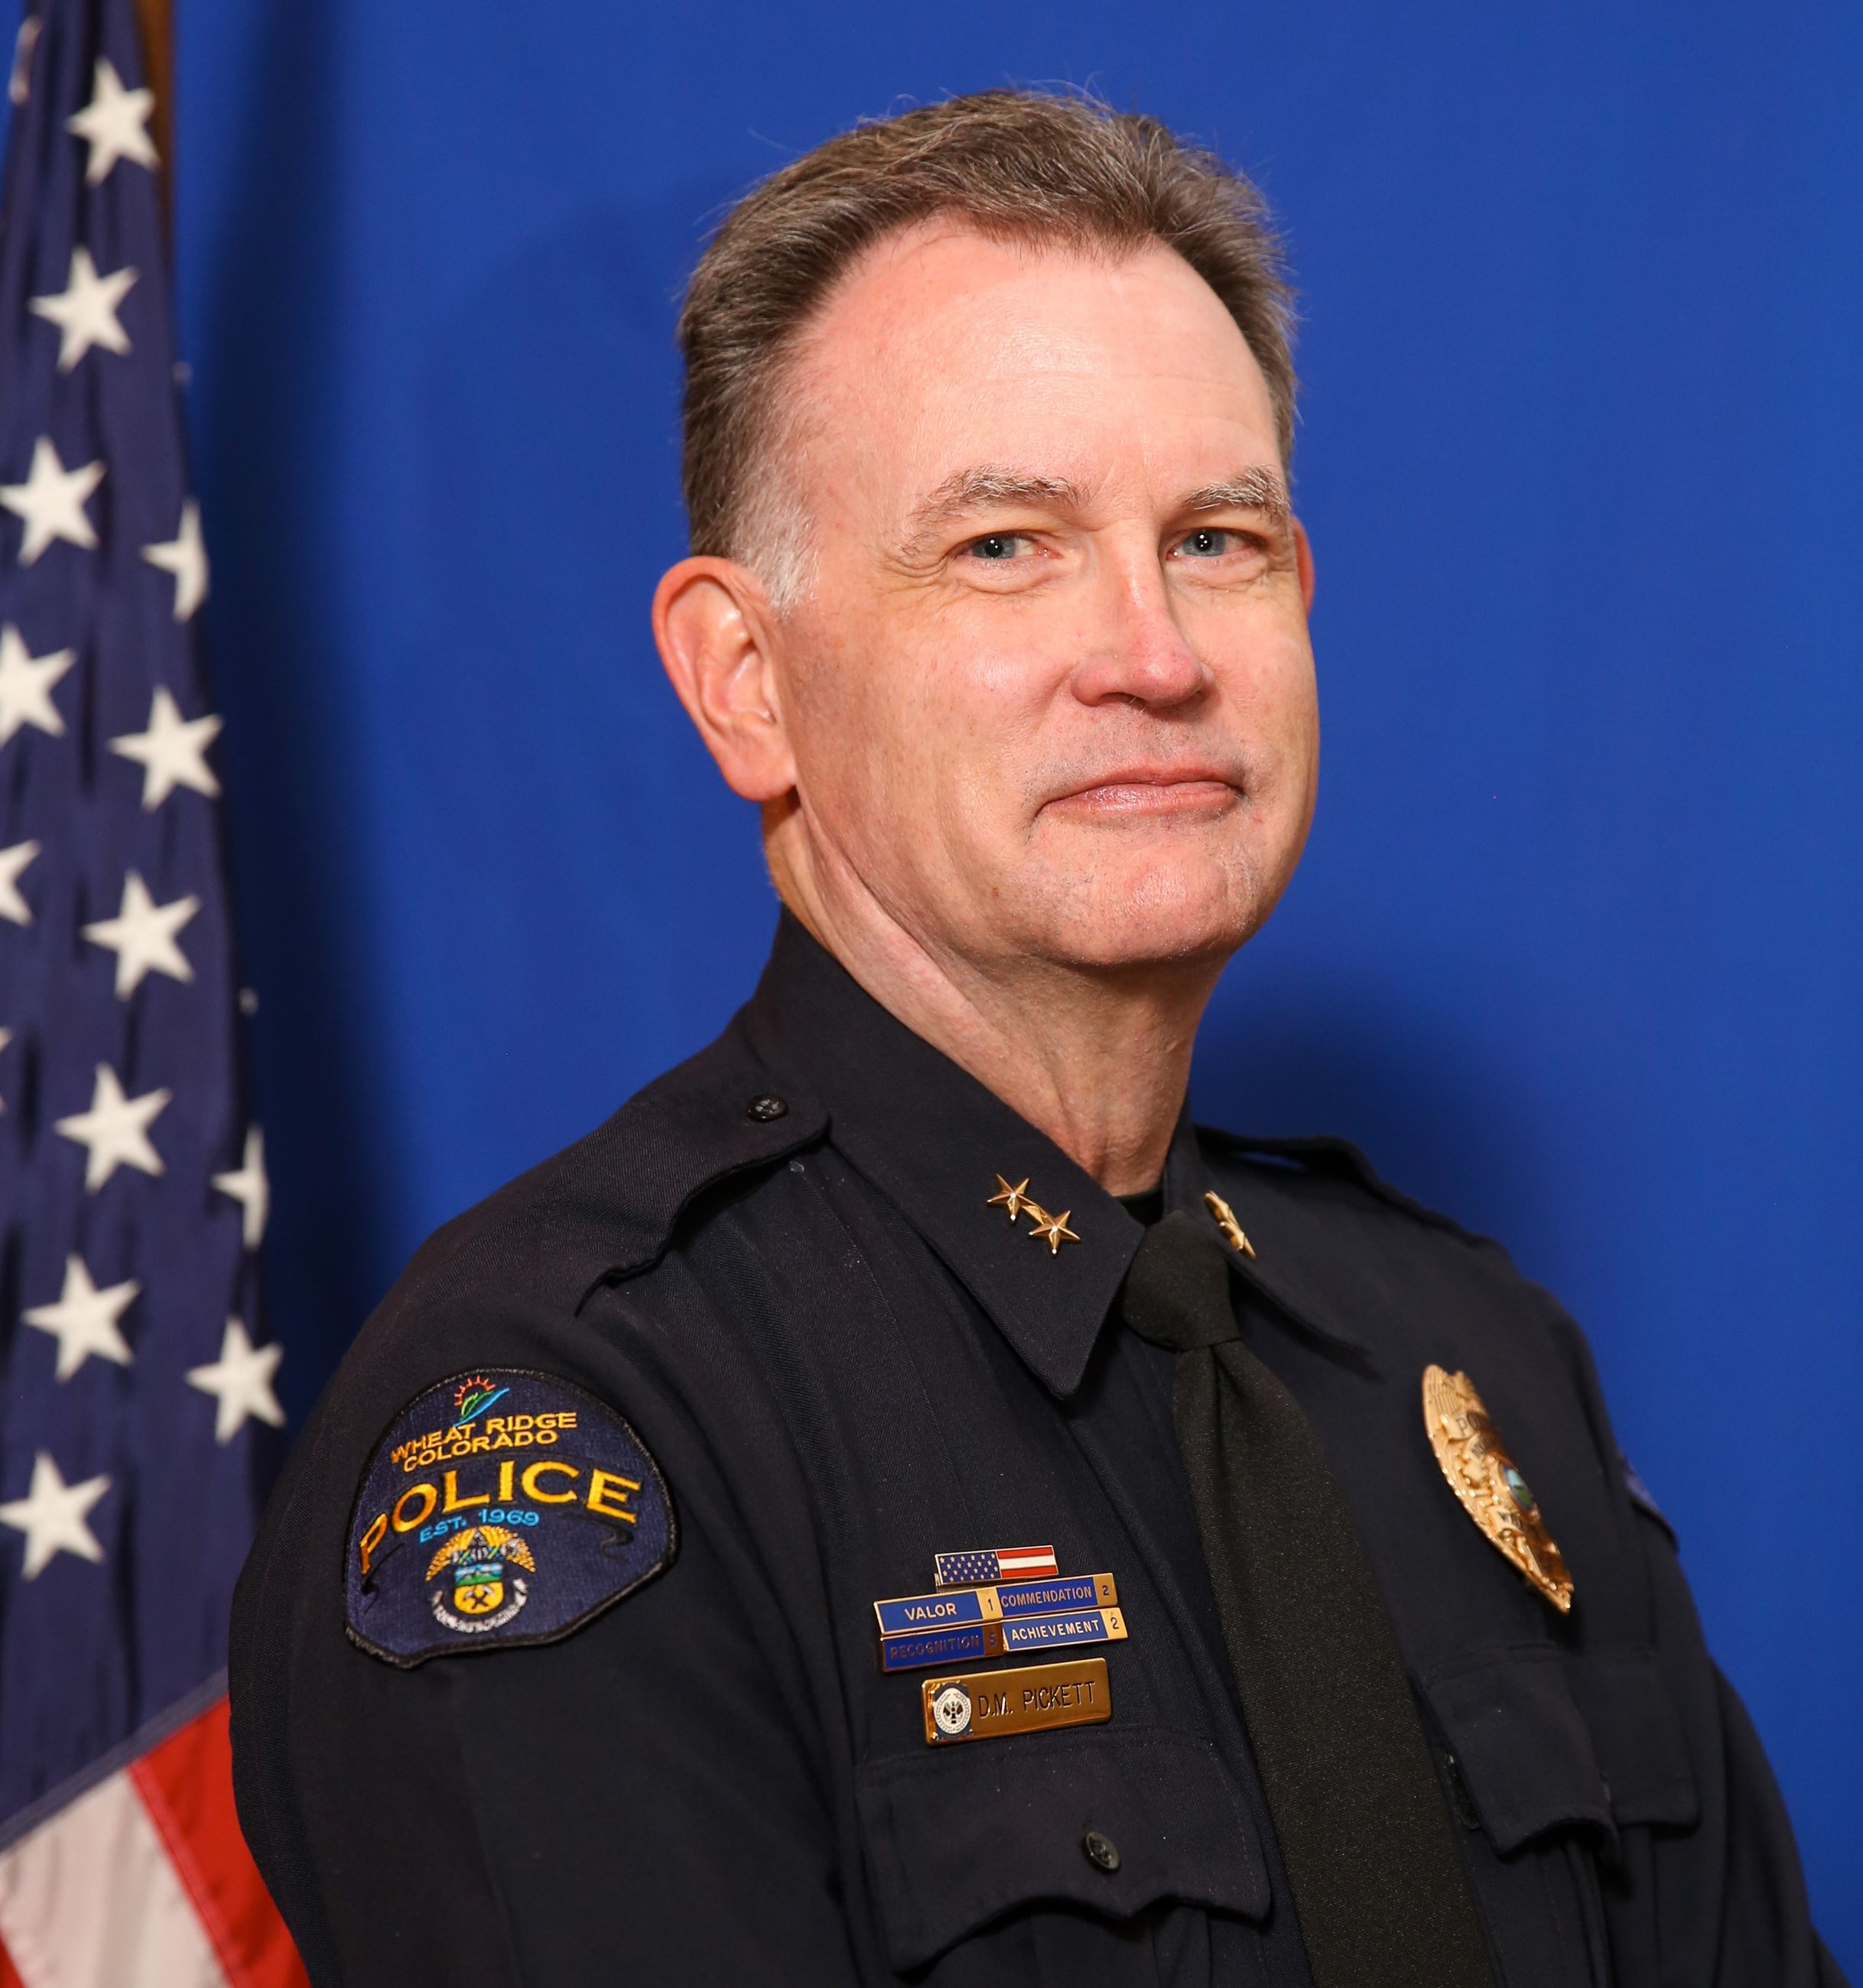 Photo of Chief Pickett for page